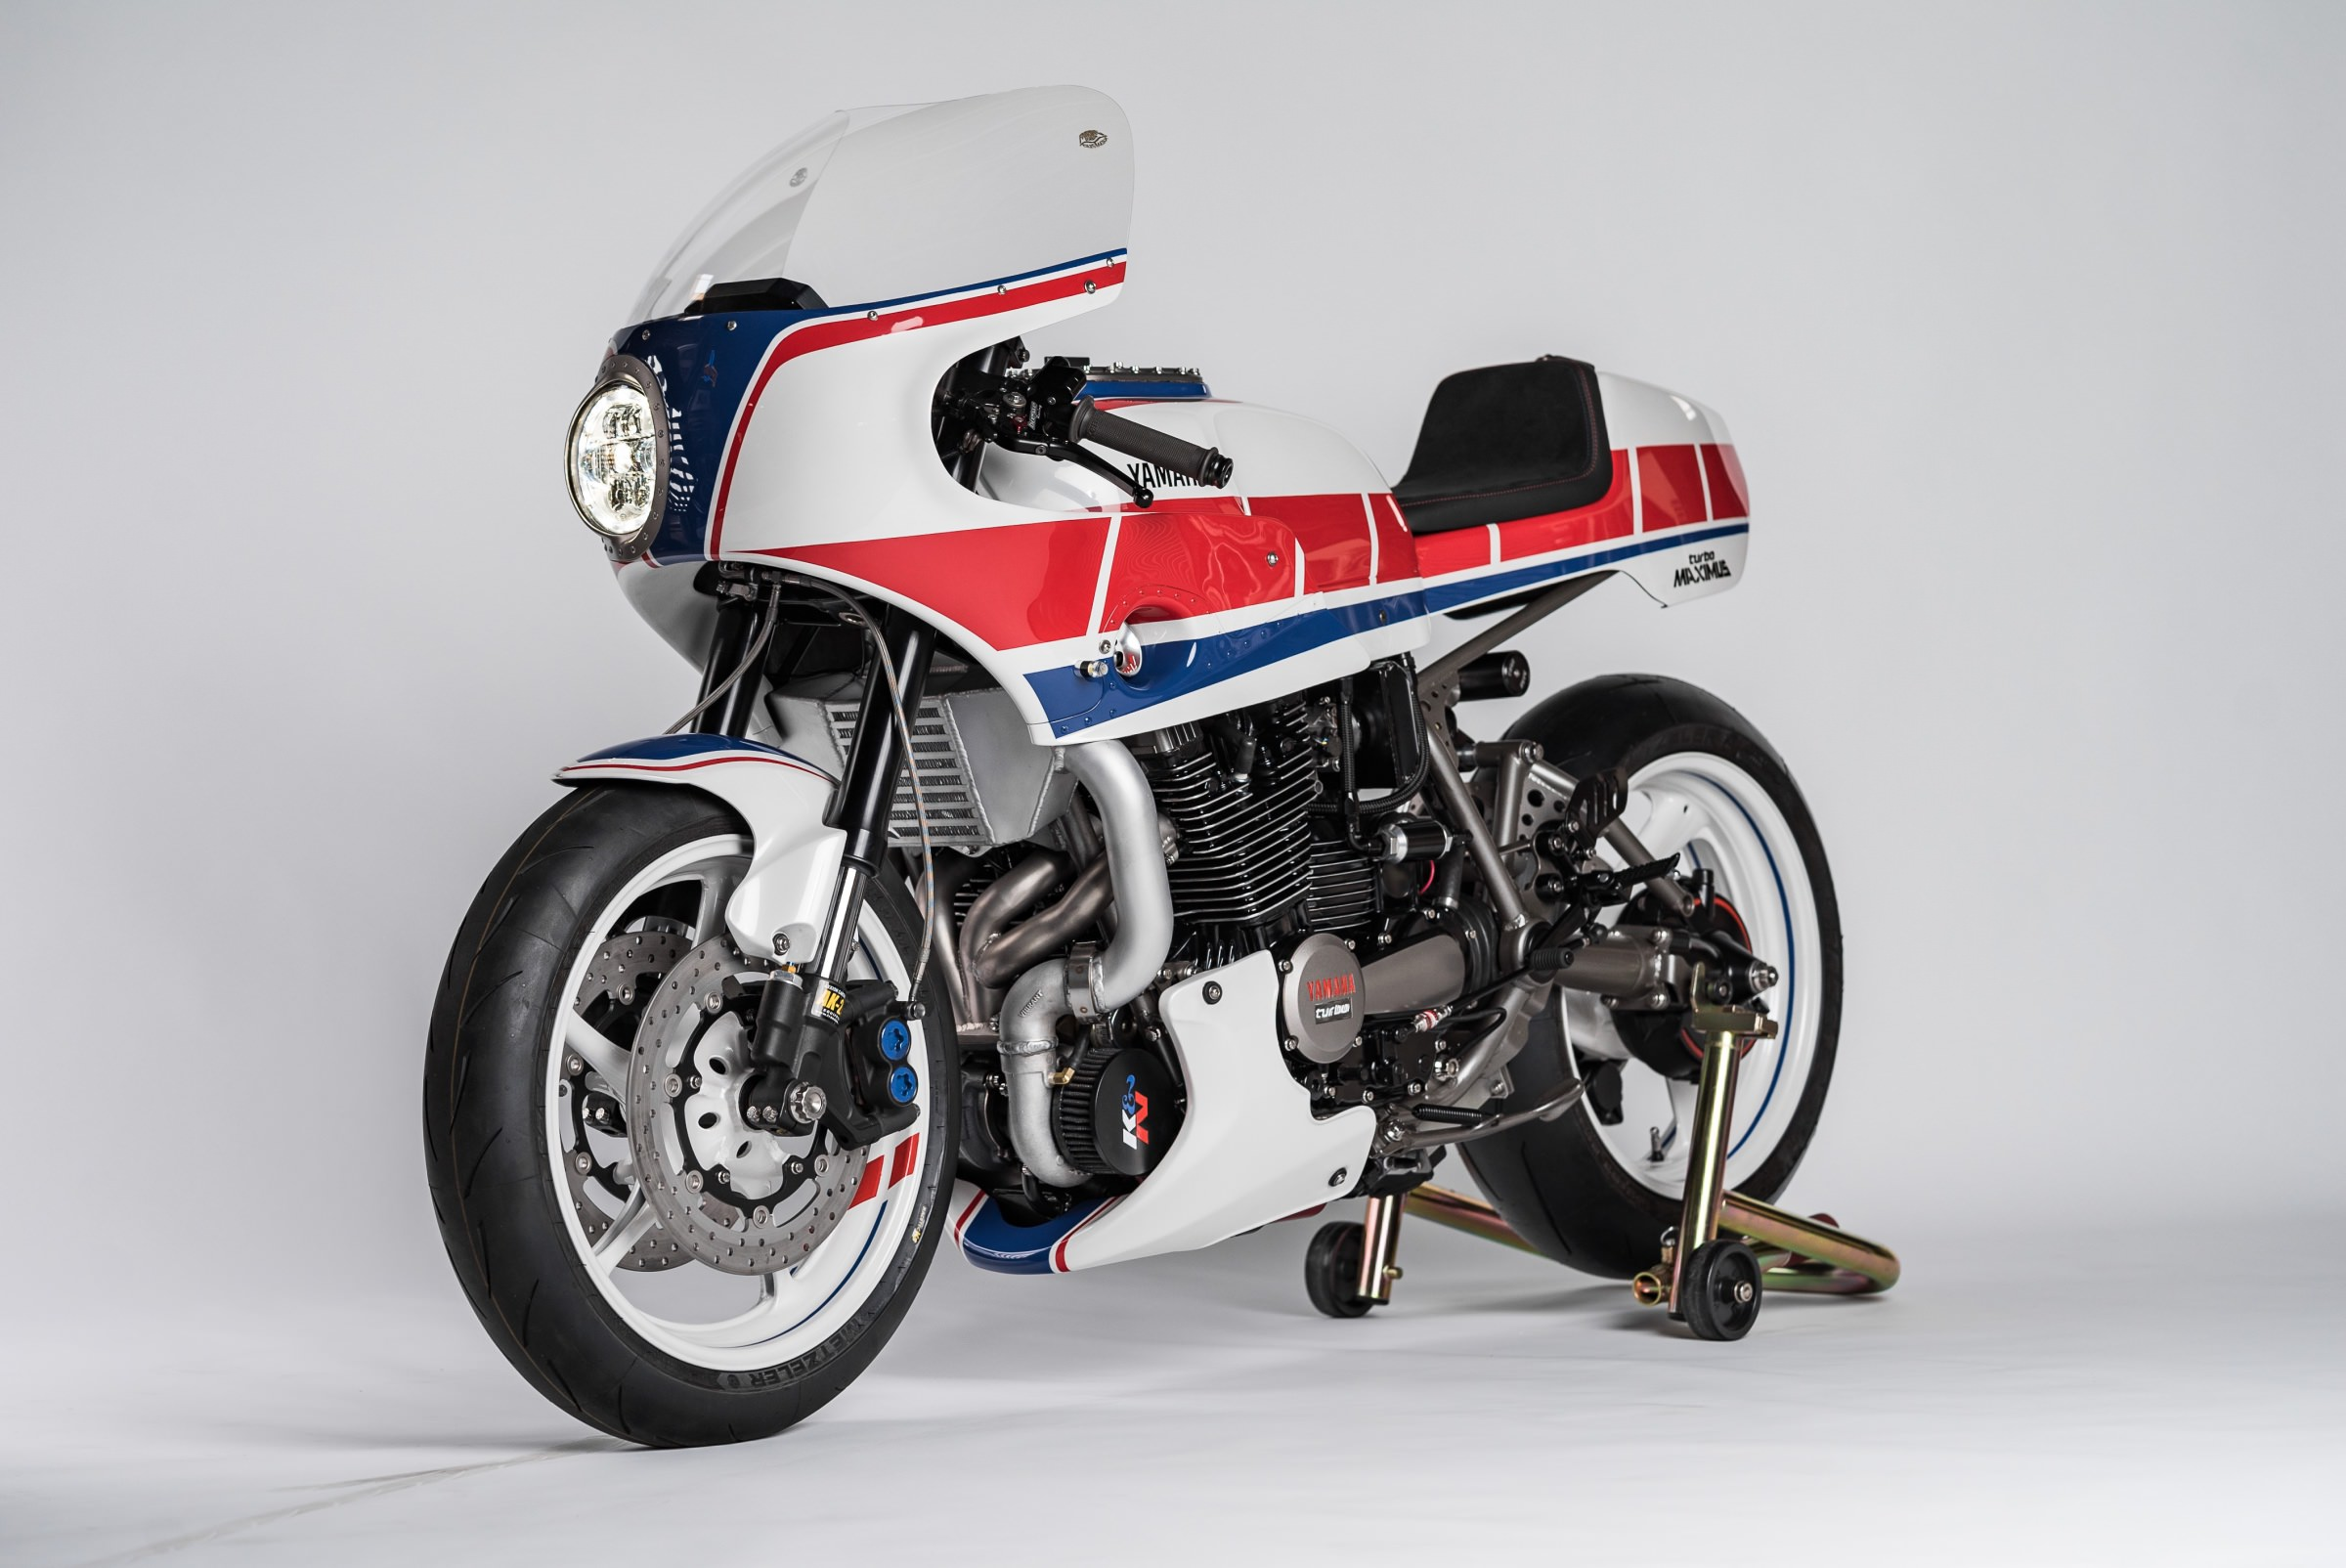 The Turbo Maximus - A 200 hp Turbocharged Yamaha by Derek Kimes